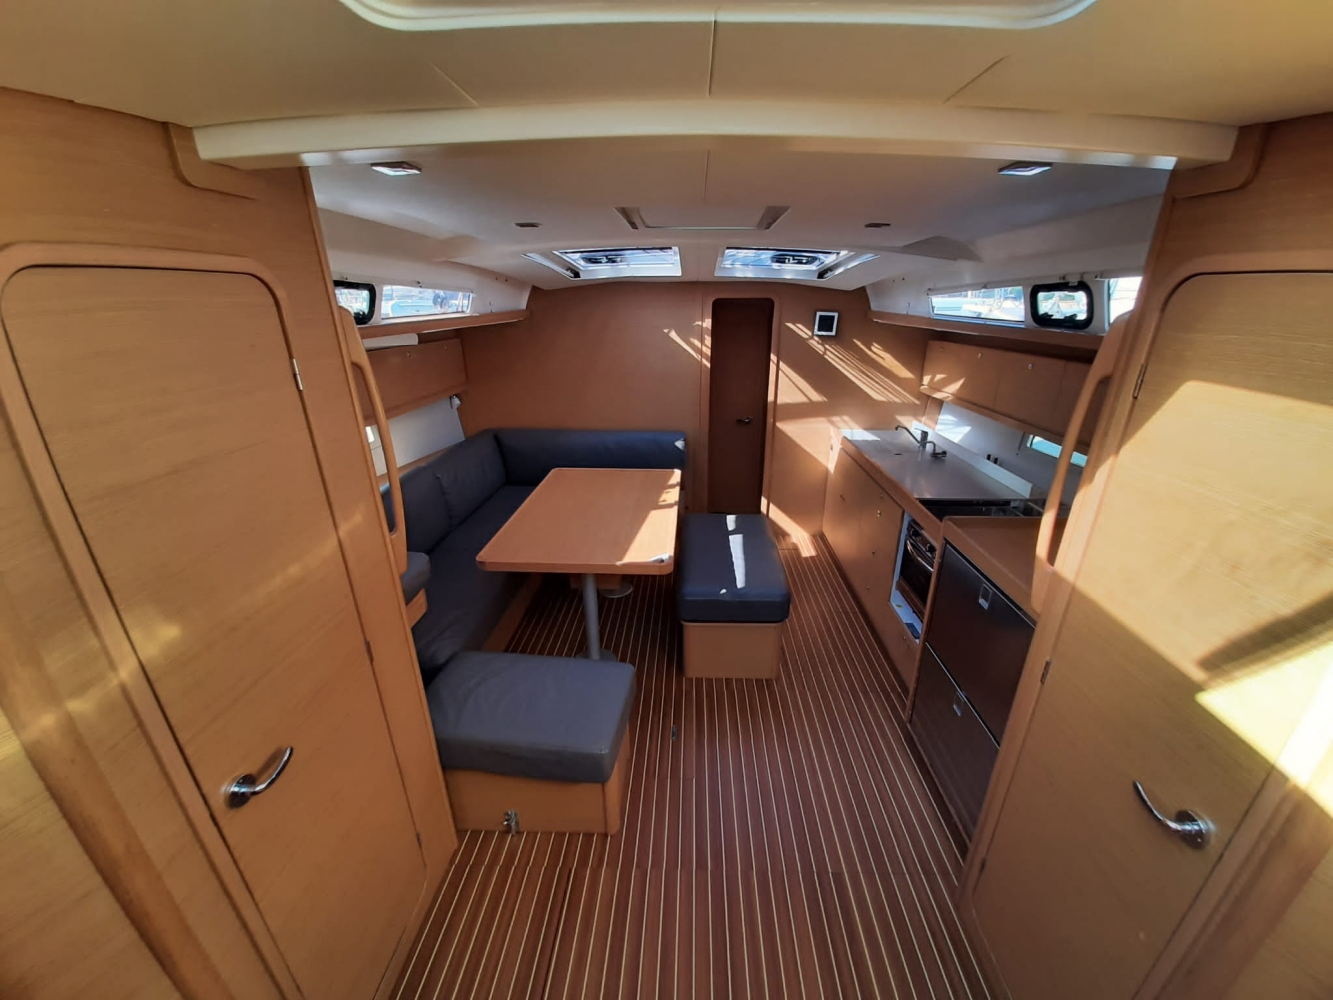 Dufour 460 Grand Large Diego 2018 (Diego) Interior image - 2